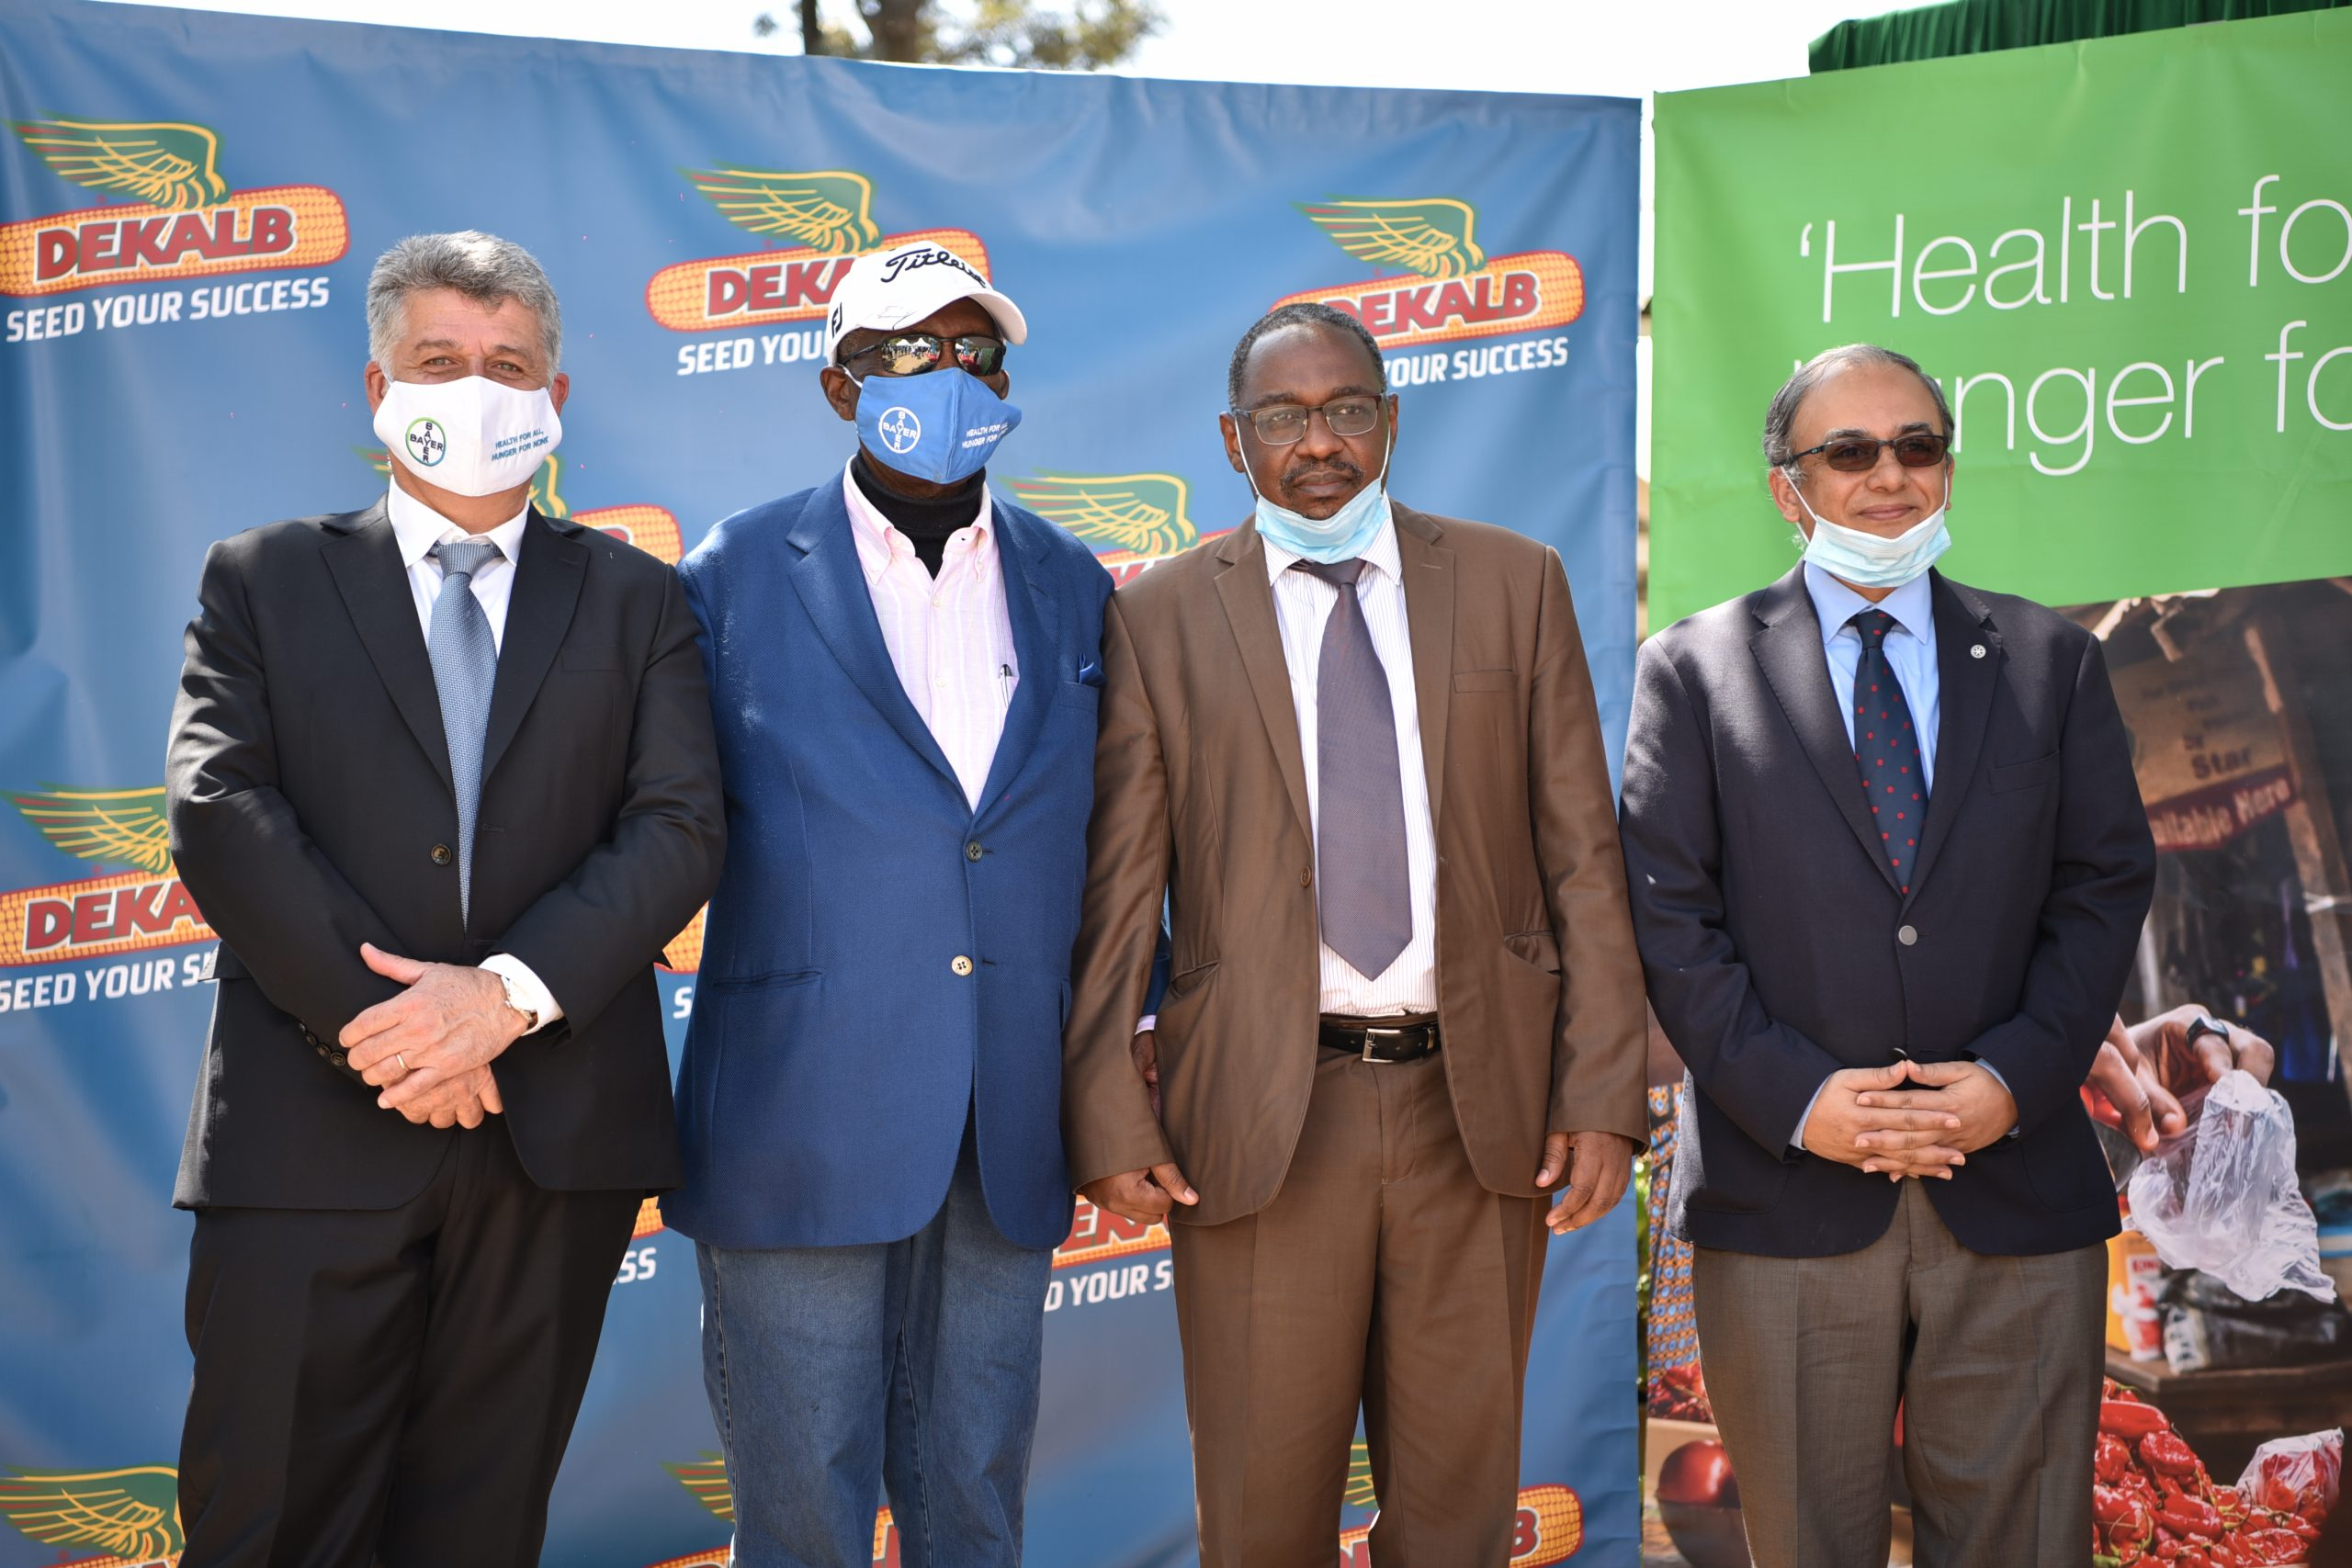 Bayer to provide free seeds to 700,000 farmers impacted by COVID-19 in Africa